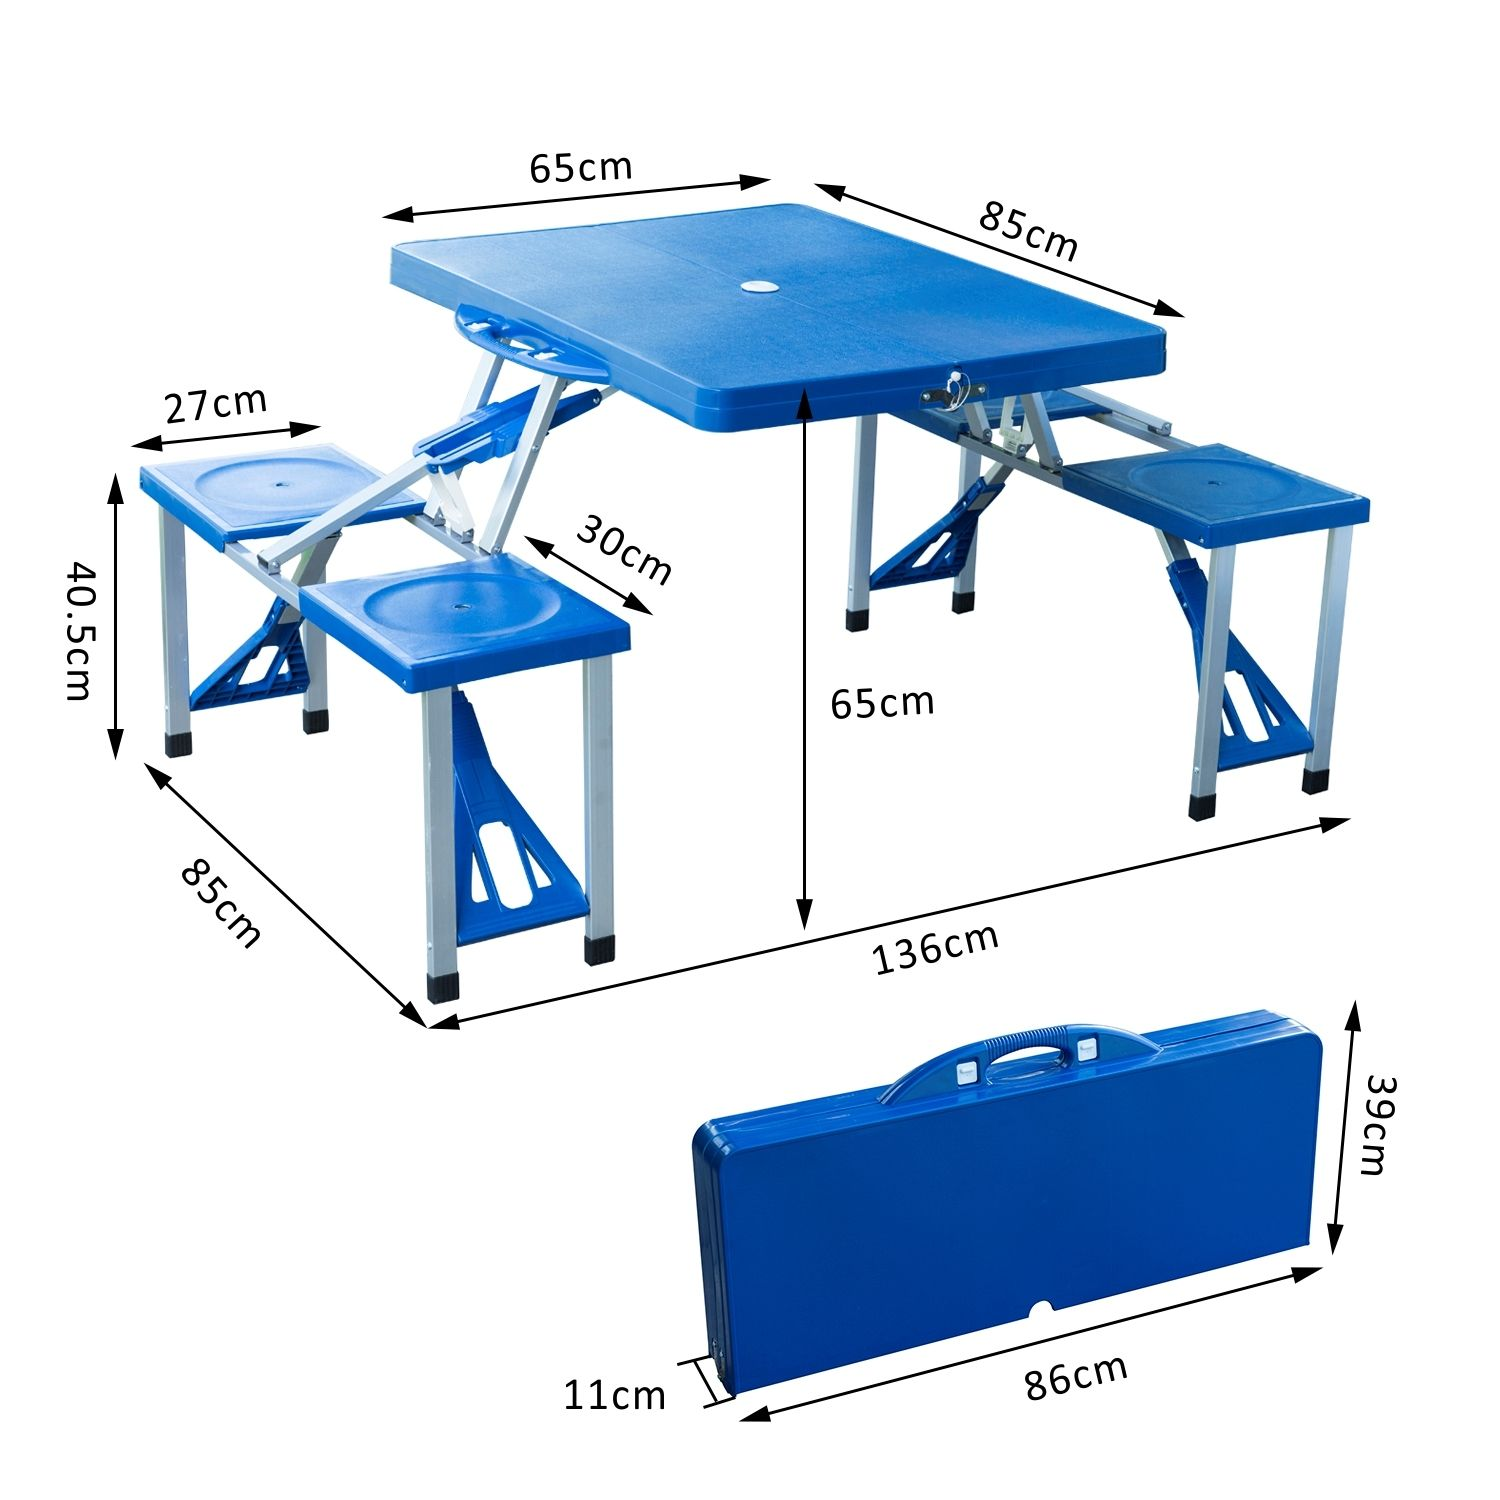 Portable-Folding-Camping-Picnic-Table-Party-Outdoor-Garden-Chair-Stools-Set thumbnail 12